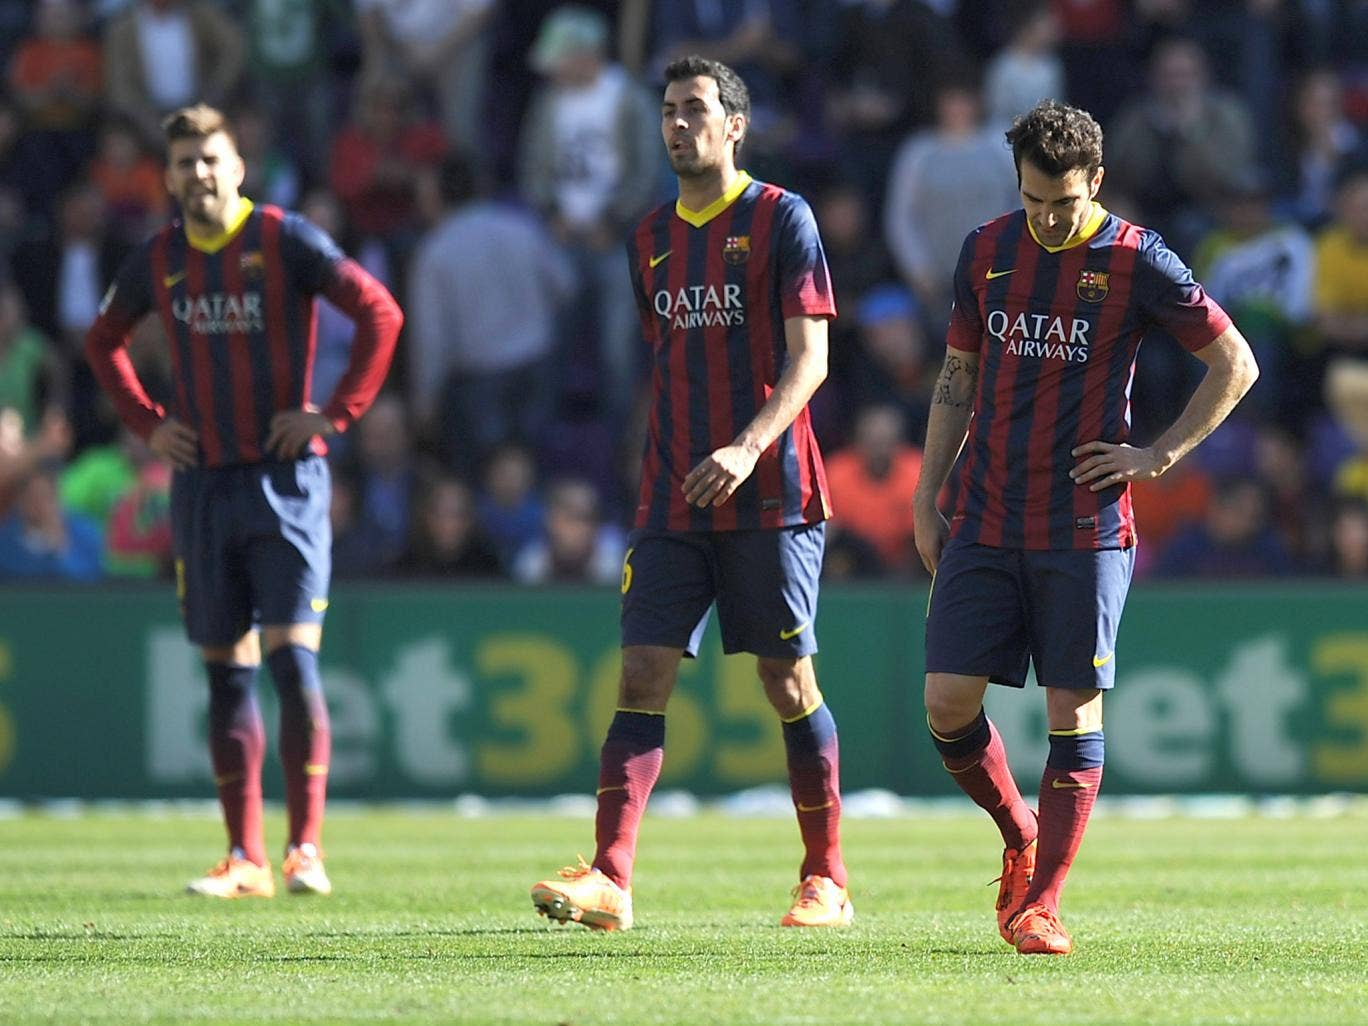 Gerard Pique, Sergio Busquets and Cesc Fabregas react to Barcelona's defeat against Valladolid